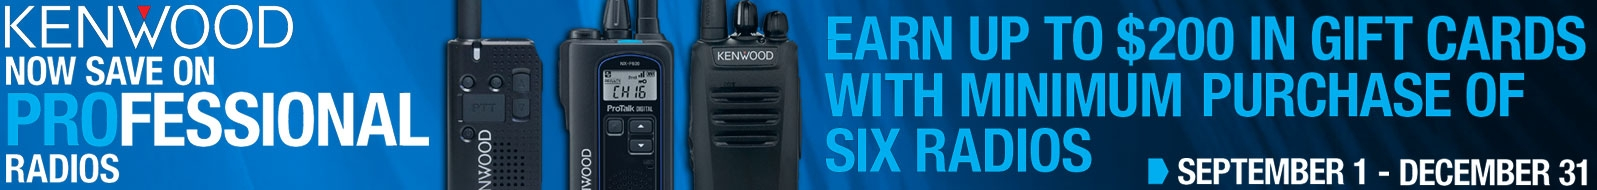 Earn a $100-$200 gift card rebate with a minimum purchase of six radios!